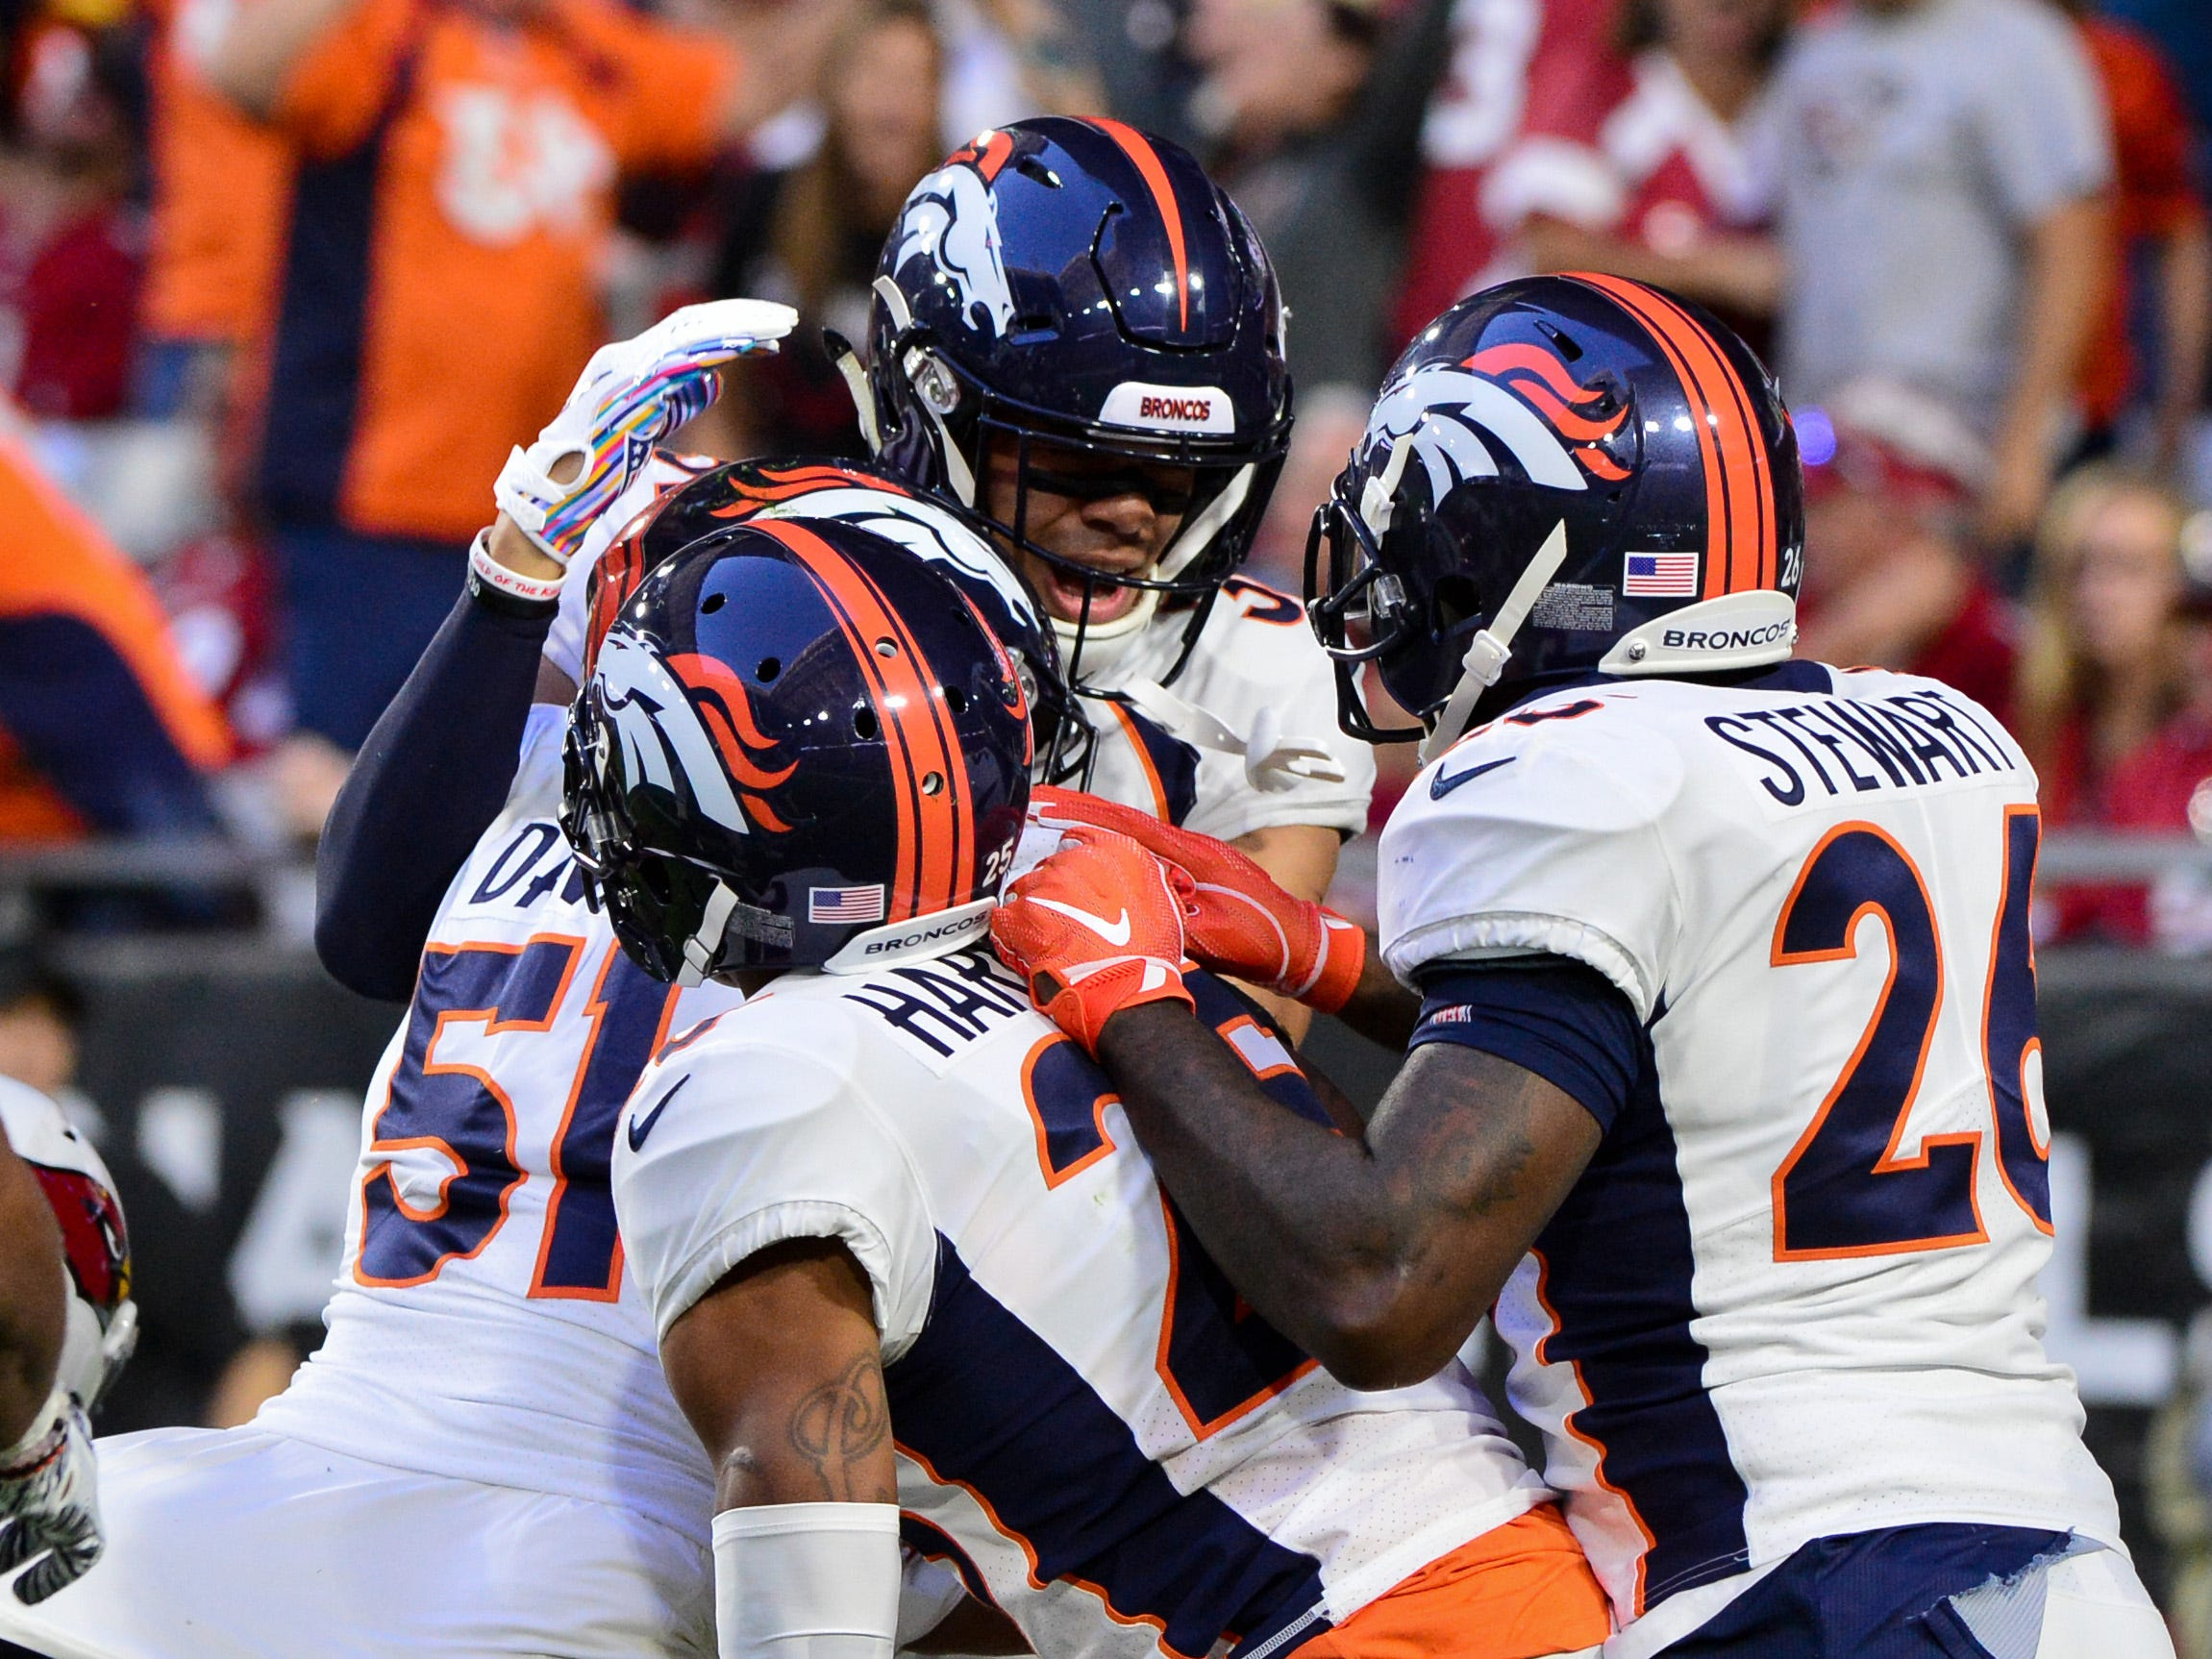 Oct 18, 2018; Glendale, AZ, USA; Denver Broncos linebacker Todd Davis (51) celebrates with teammates after returning an interception for a touchdown during he first half against the Arizona Cardinals at State Farm Stadium.